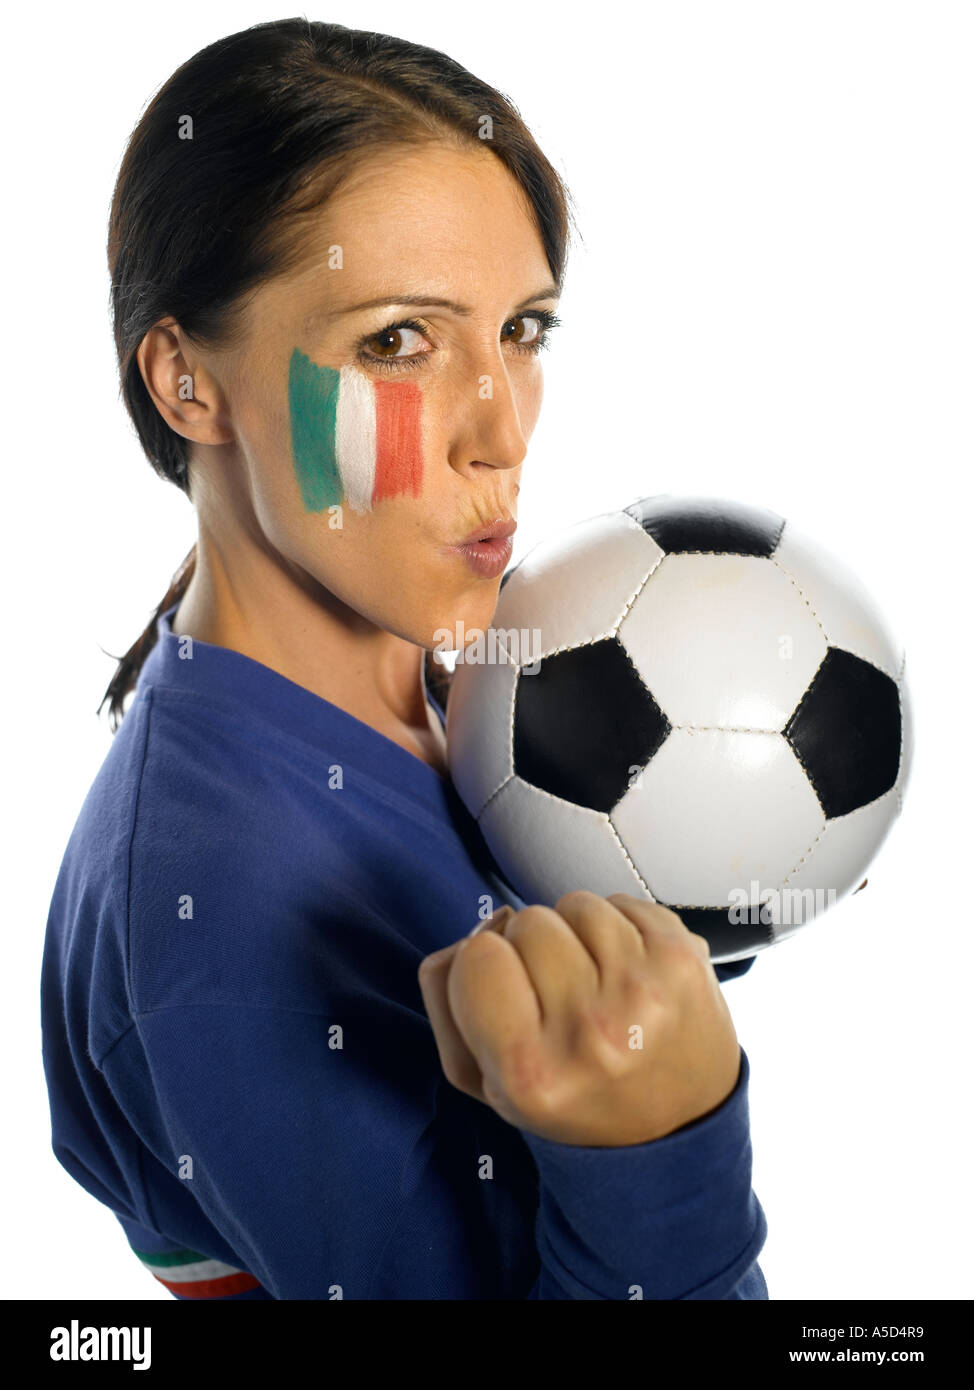 Woman with Italian flag painted on her face with football punching